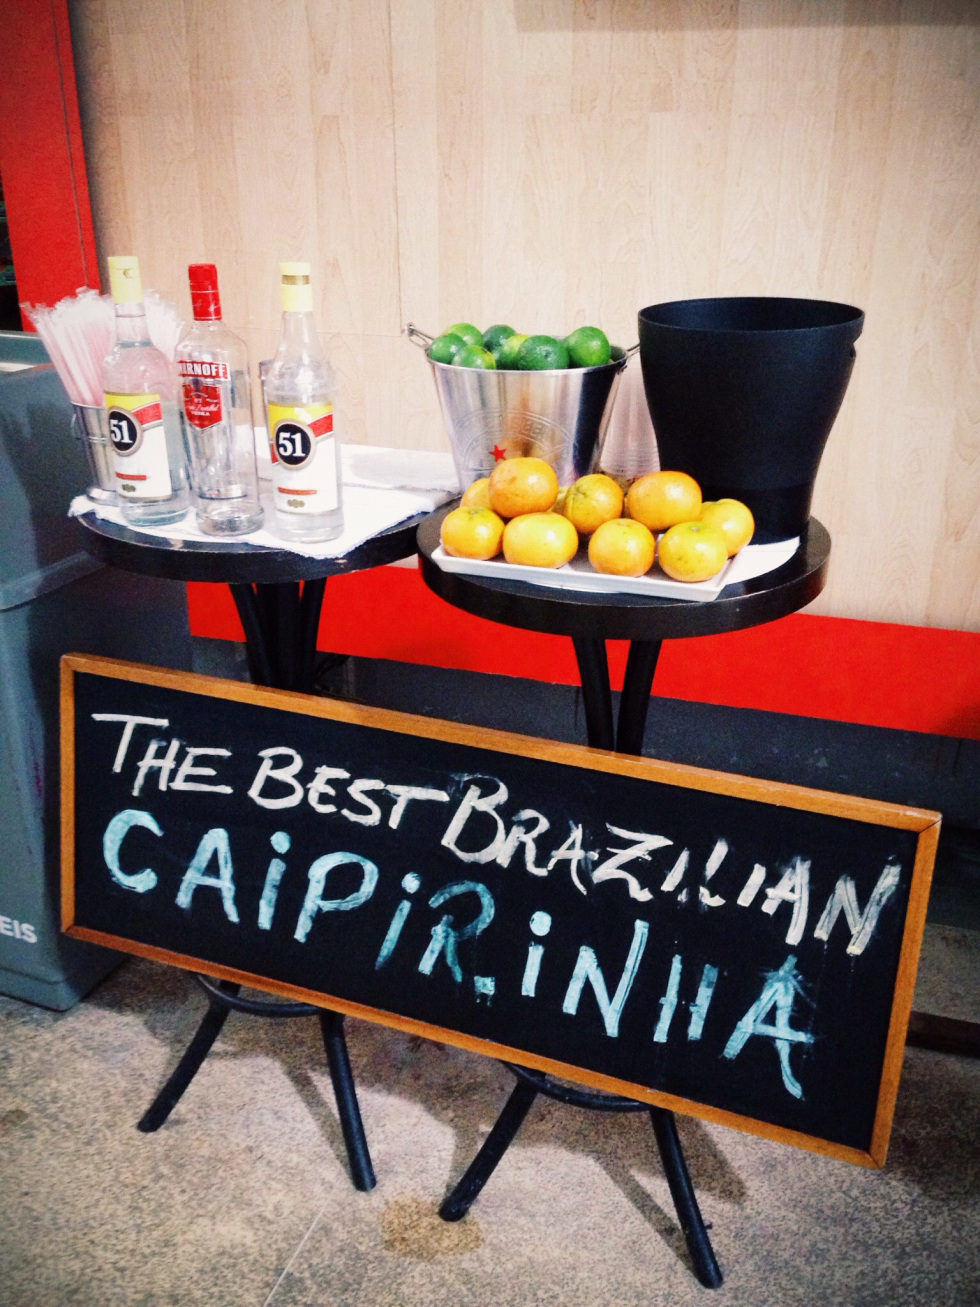 Saving the best for last, one cannot forget to mention the national drink, the caipirinha! Beers such as Skol, Shin or Brahma were alright, and Brazilian Rose or Chardonnay had a place in my heart. However, nothing beats the sweet and sour combination of sugar muddled with lime, finished off with a long pour of strong Brazilian cachaca and lots of ice. This drink was inexpensive, at about ten real, and easily found absolutely anywhere from fine dining restaurants to street side carts. This was my go to drink during my entire stay. You can't go wrong with a caipirinha- the beverage that's refreshing, flavorful, and cheap, but strong enough to start- or end- every night in the right way.